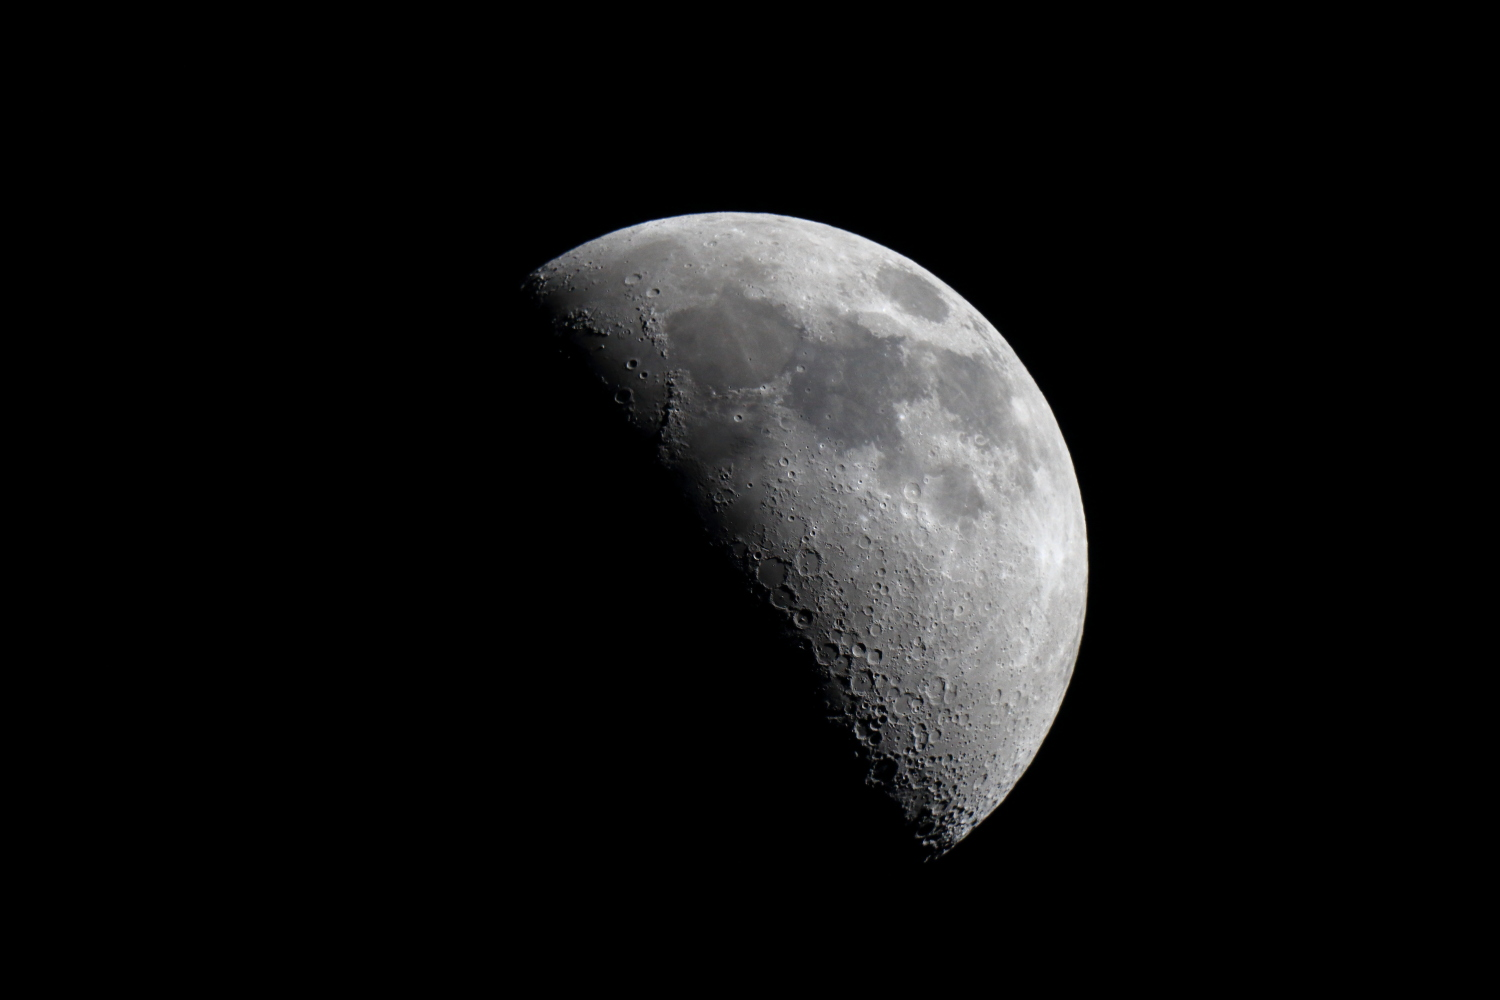 Waxing Moon at 1920mm!    Single shot at 1/800 s - ISO 400 - @ 1920 mm - EOS 1200D + Dobson SkyWatcher 250/1200 f/5 - Mac OS + Canon DPP 4 - 5184x3456 px. Domagnano, Rep. of San Marino, 22 August 2015.